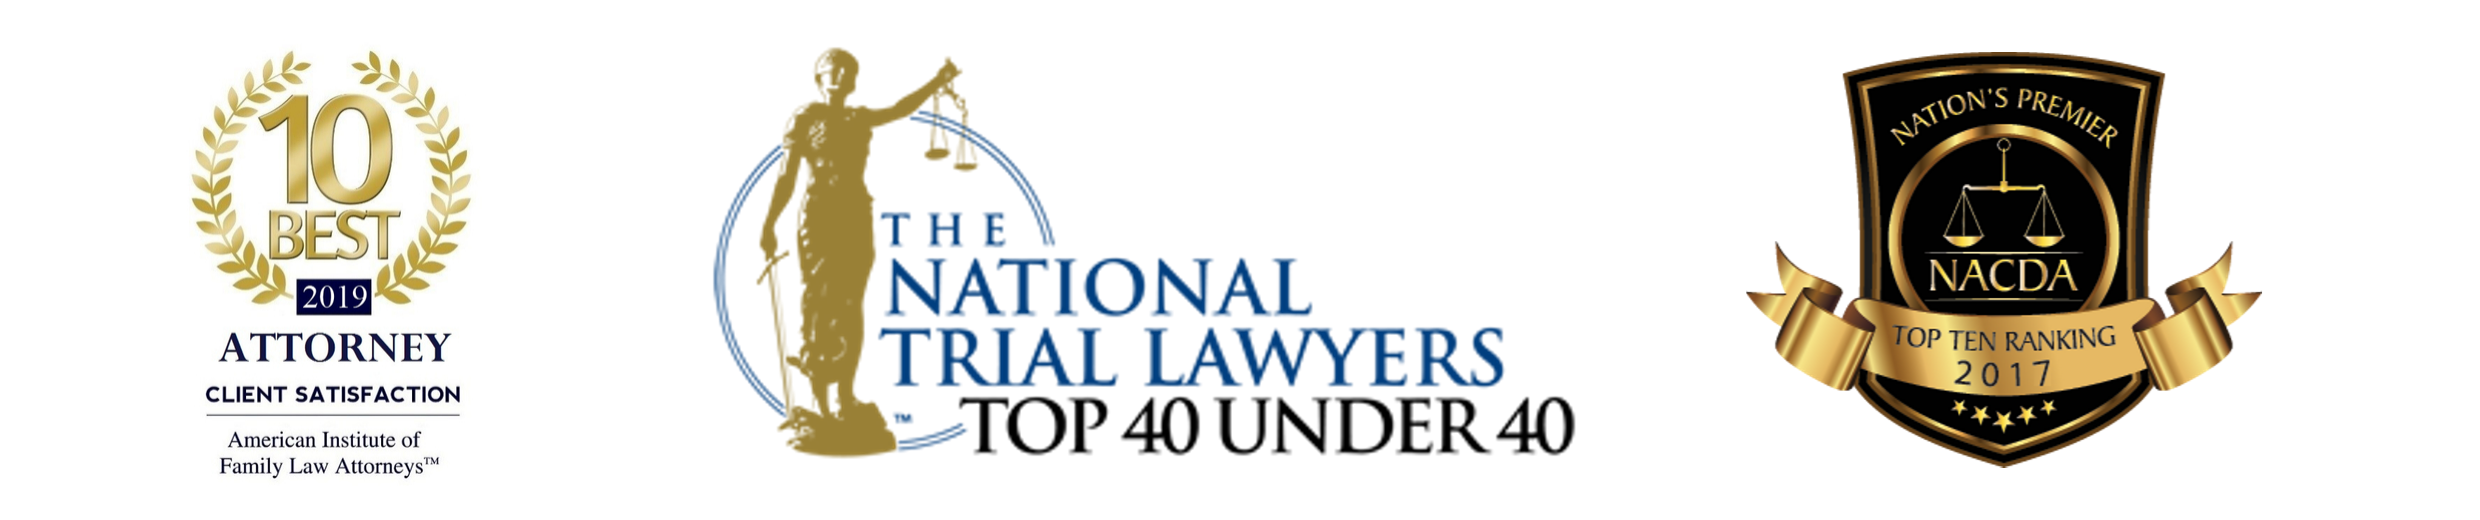 jarvis_law_awards_attorney_recognition_FLA_NACD_NTL_charlotte_nc.png